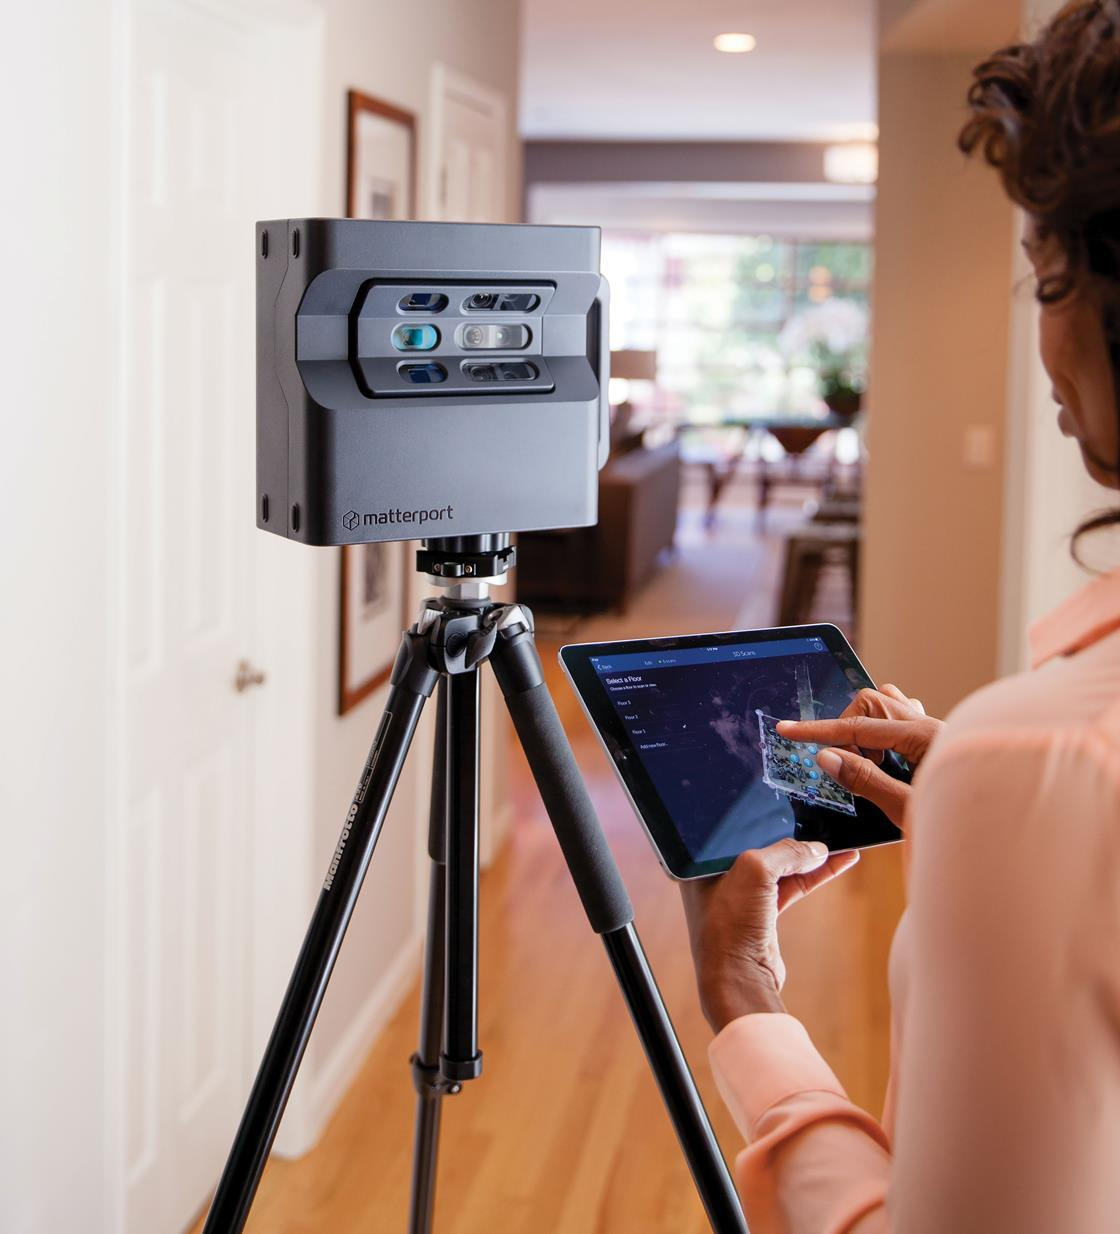 Matterport buys software firm Arraiy to integrate real and virtual worlds